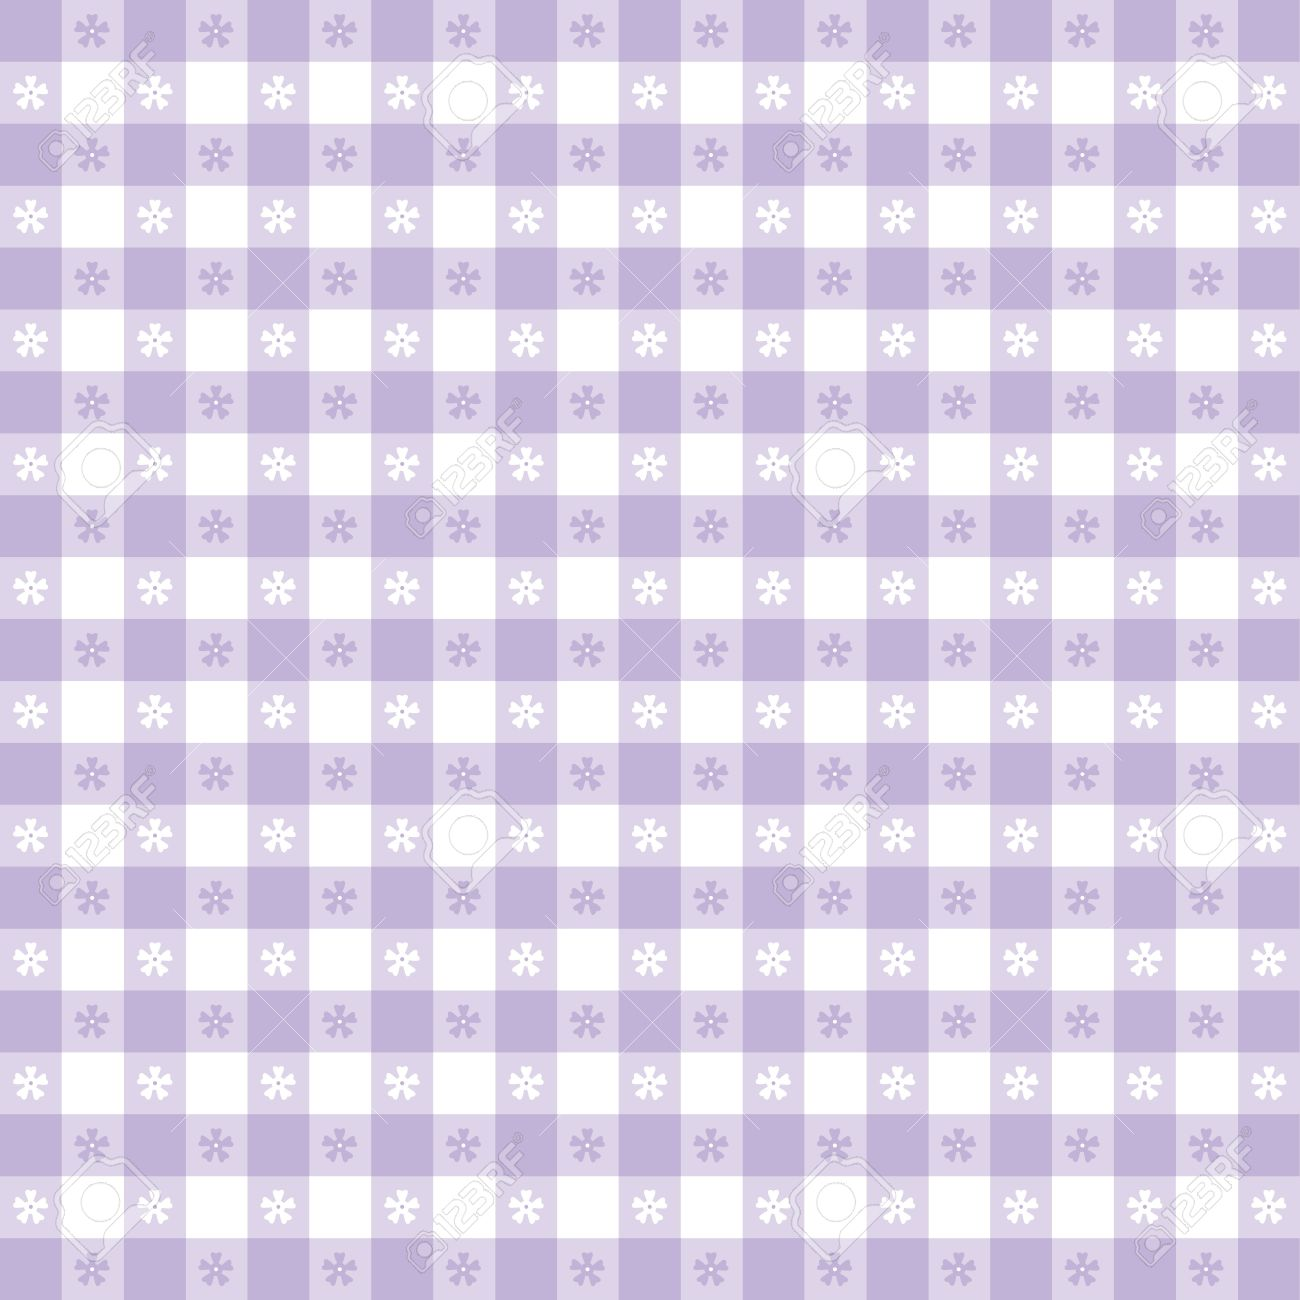 Merveilleux Seamless Tablecloth Pattern, Pastel Lavender Gingham Check EPS8 File  Includes Pattern Swatch That Will Seamlessly